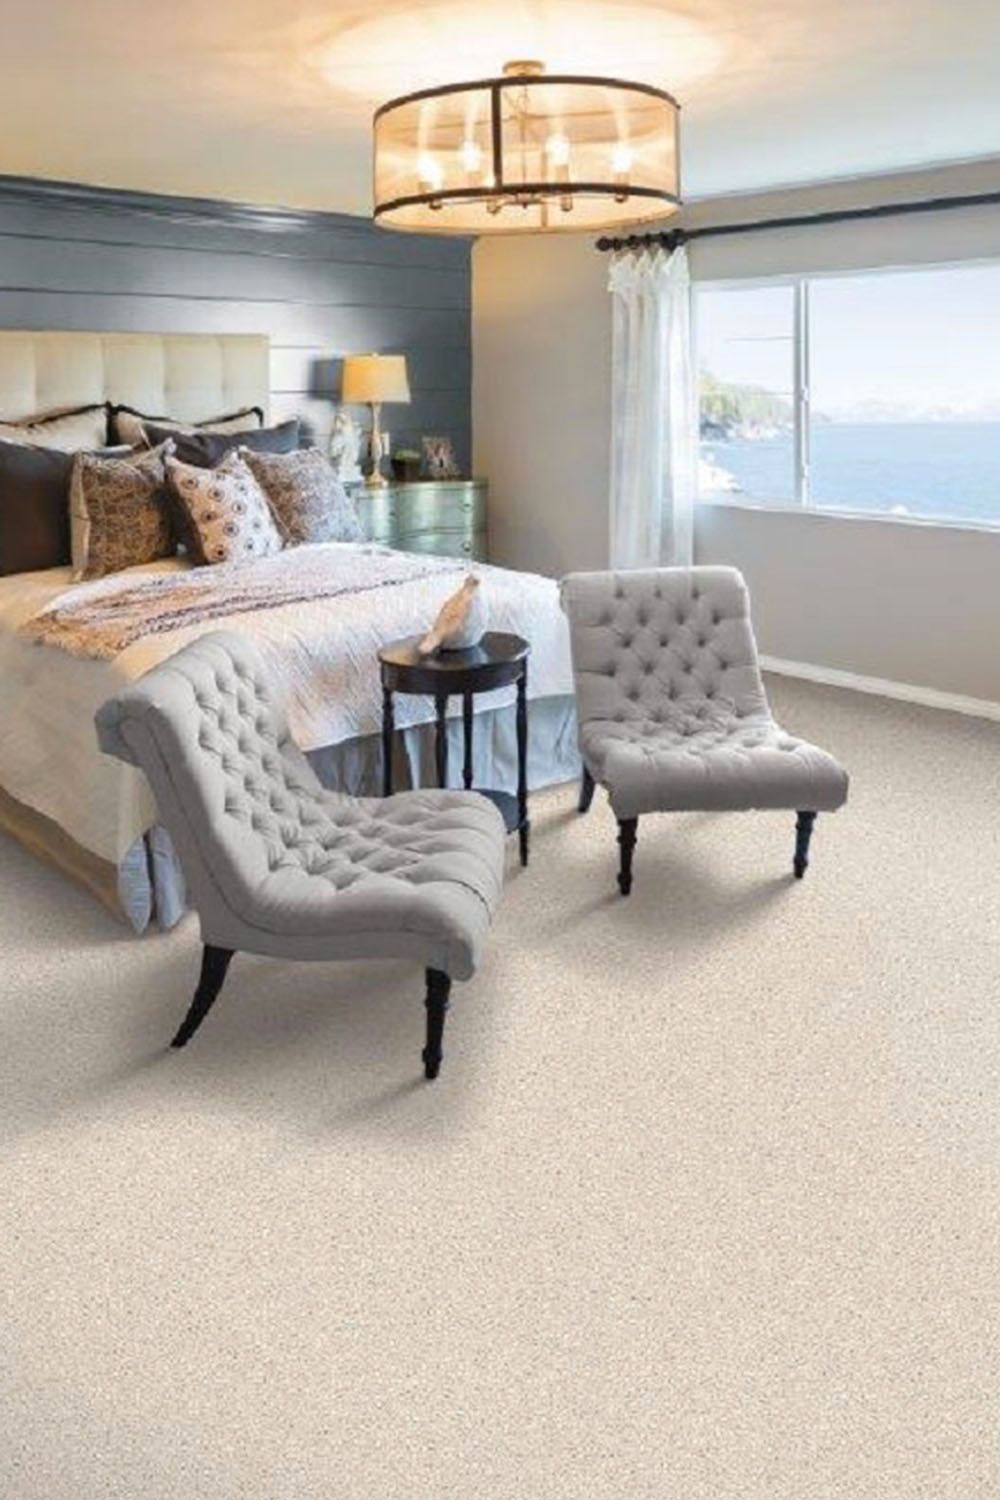 Discover the carpet you've been looking for with stain